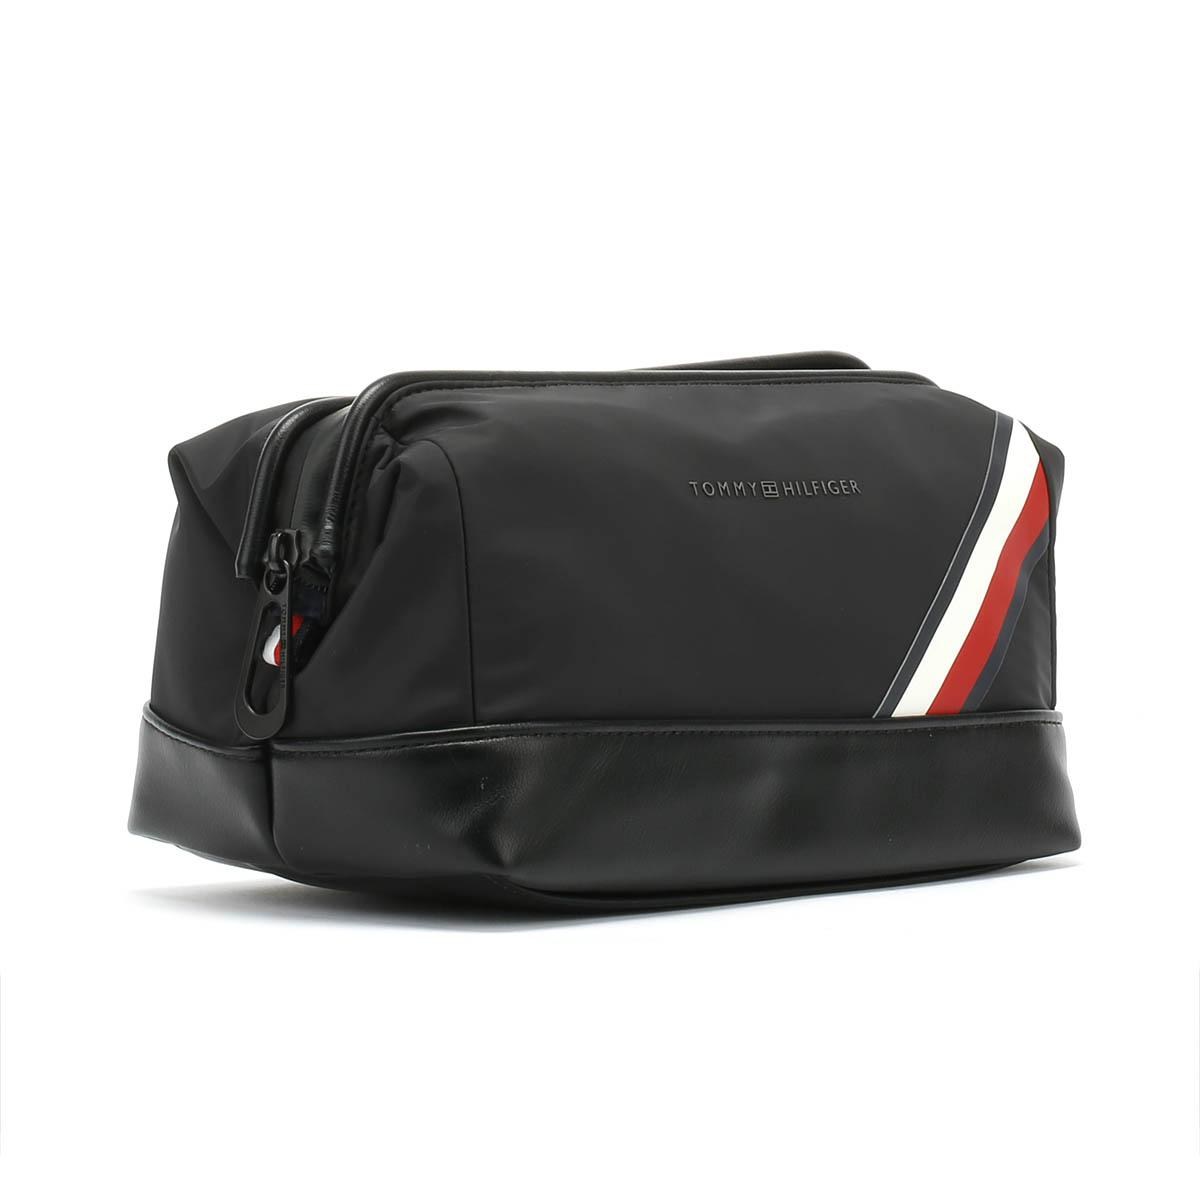 68411719fb Tommy Hilfiger Easy Nylon Framed Black Wash Bag in Black for Men - Lyst